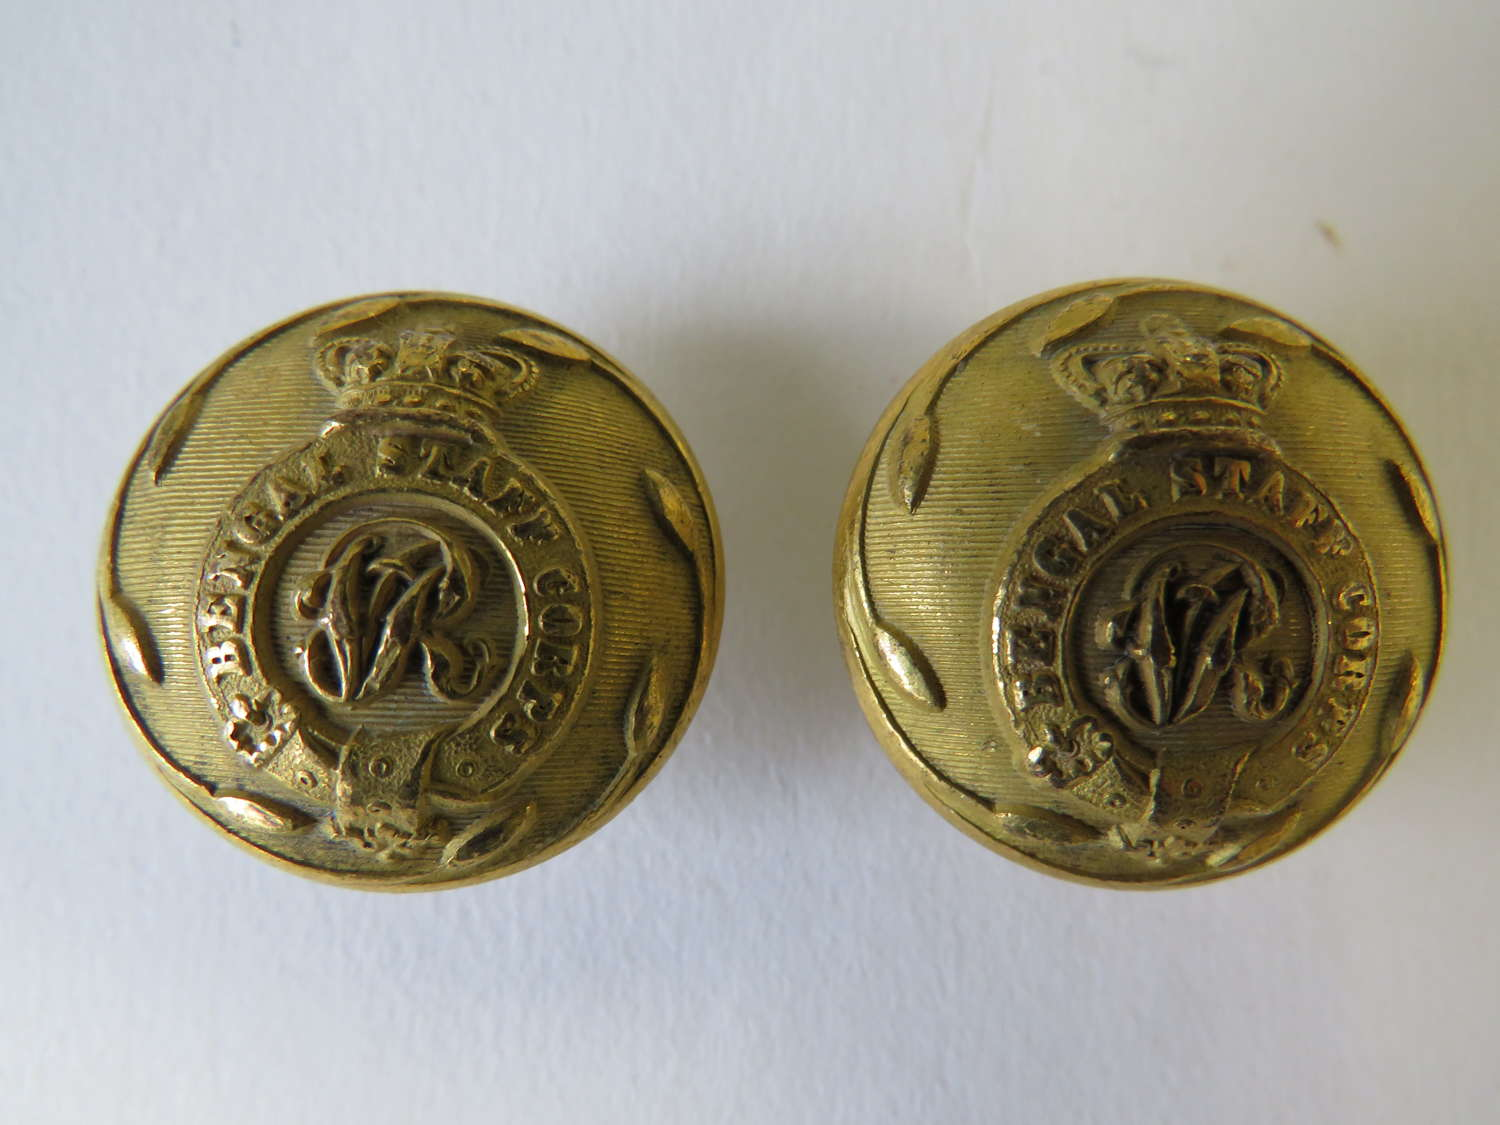 Two Victorian Bengal Staff Corps Buttons